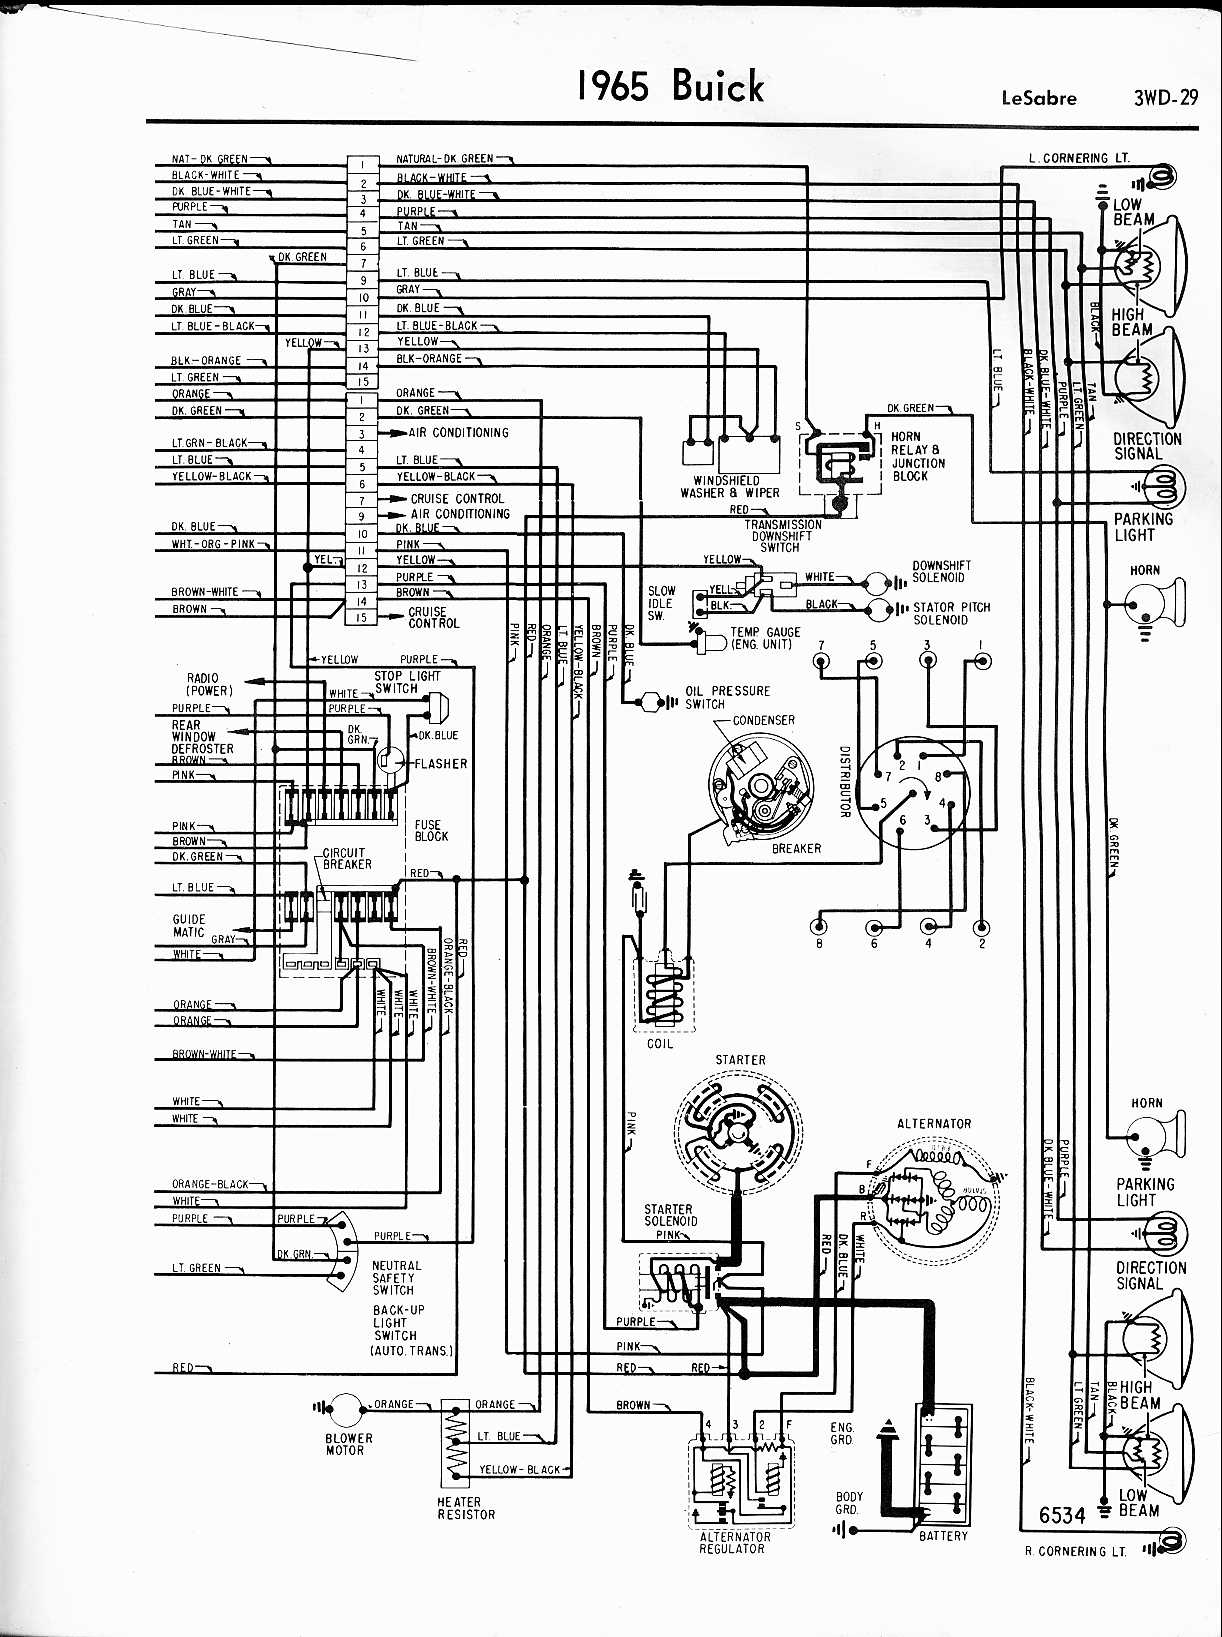 1999 Oldsmobile Intrigue Fuse Box Diagram Wiring Schematic Pathfinder